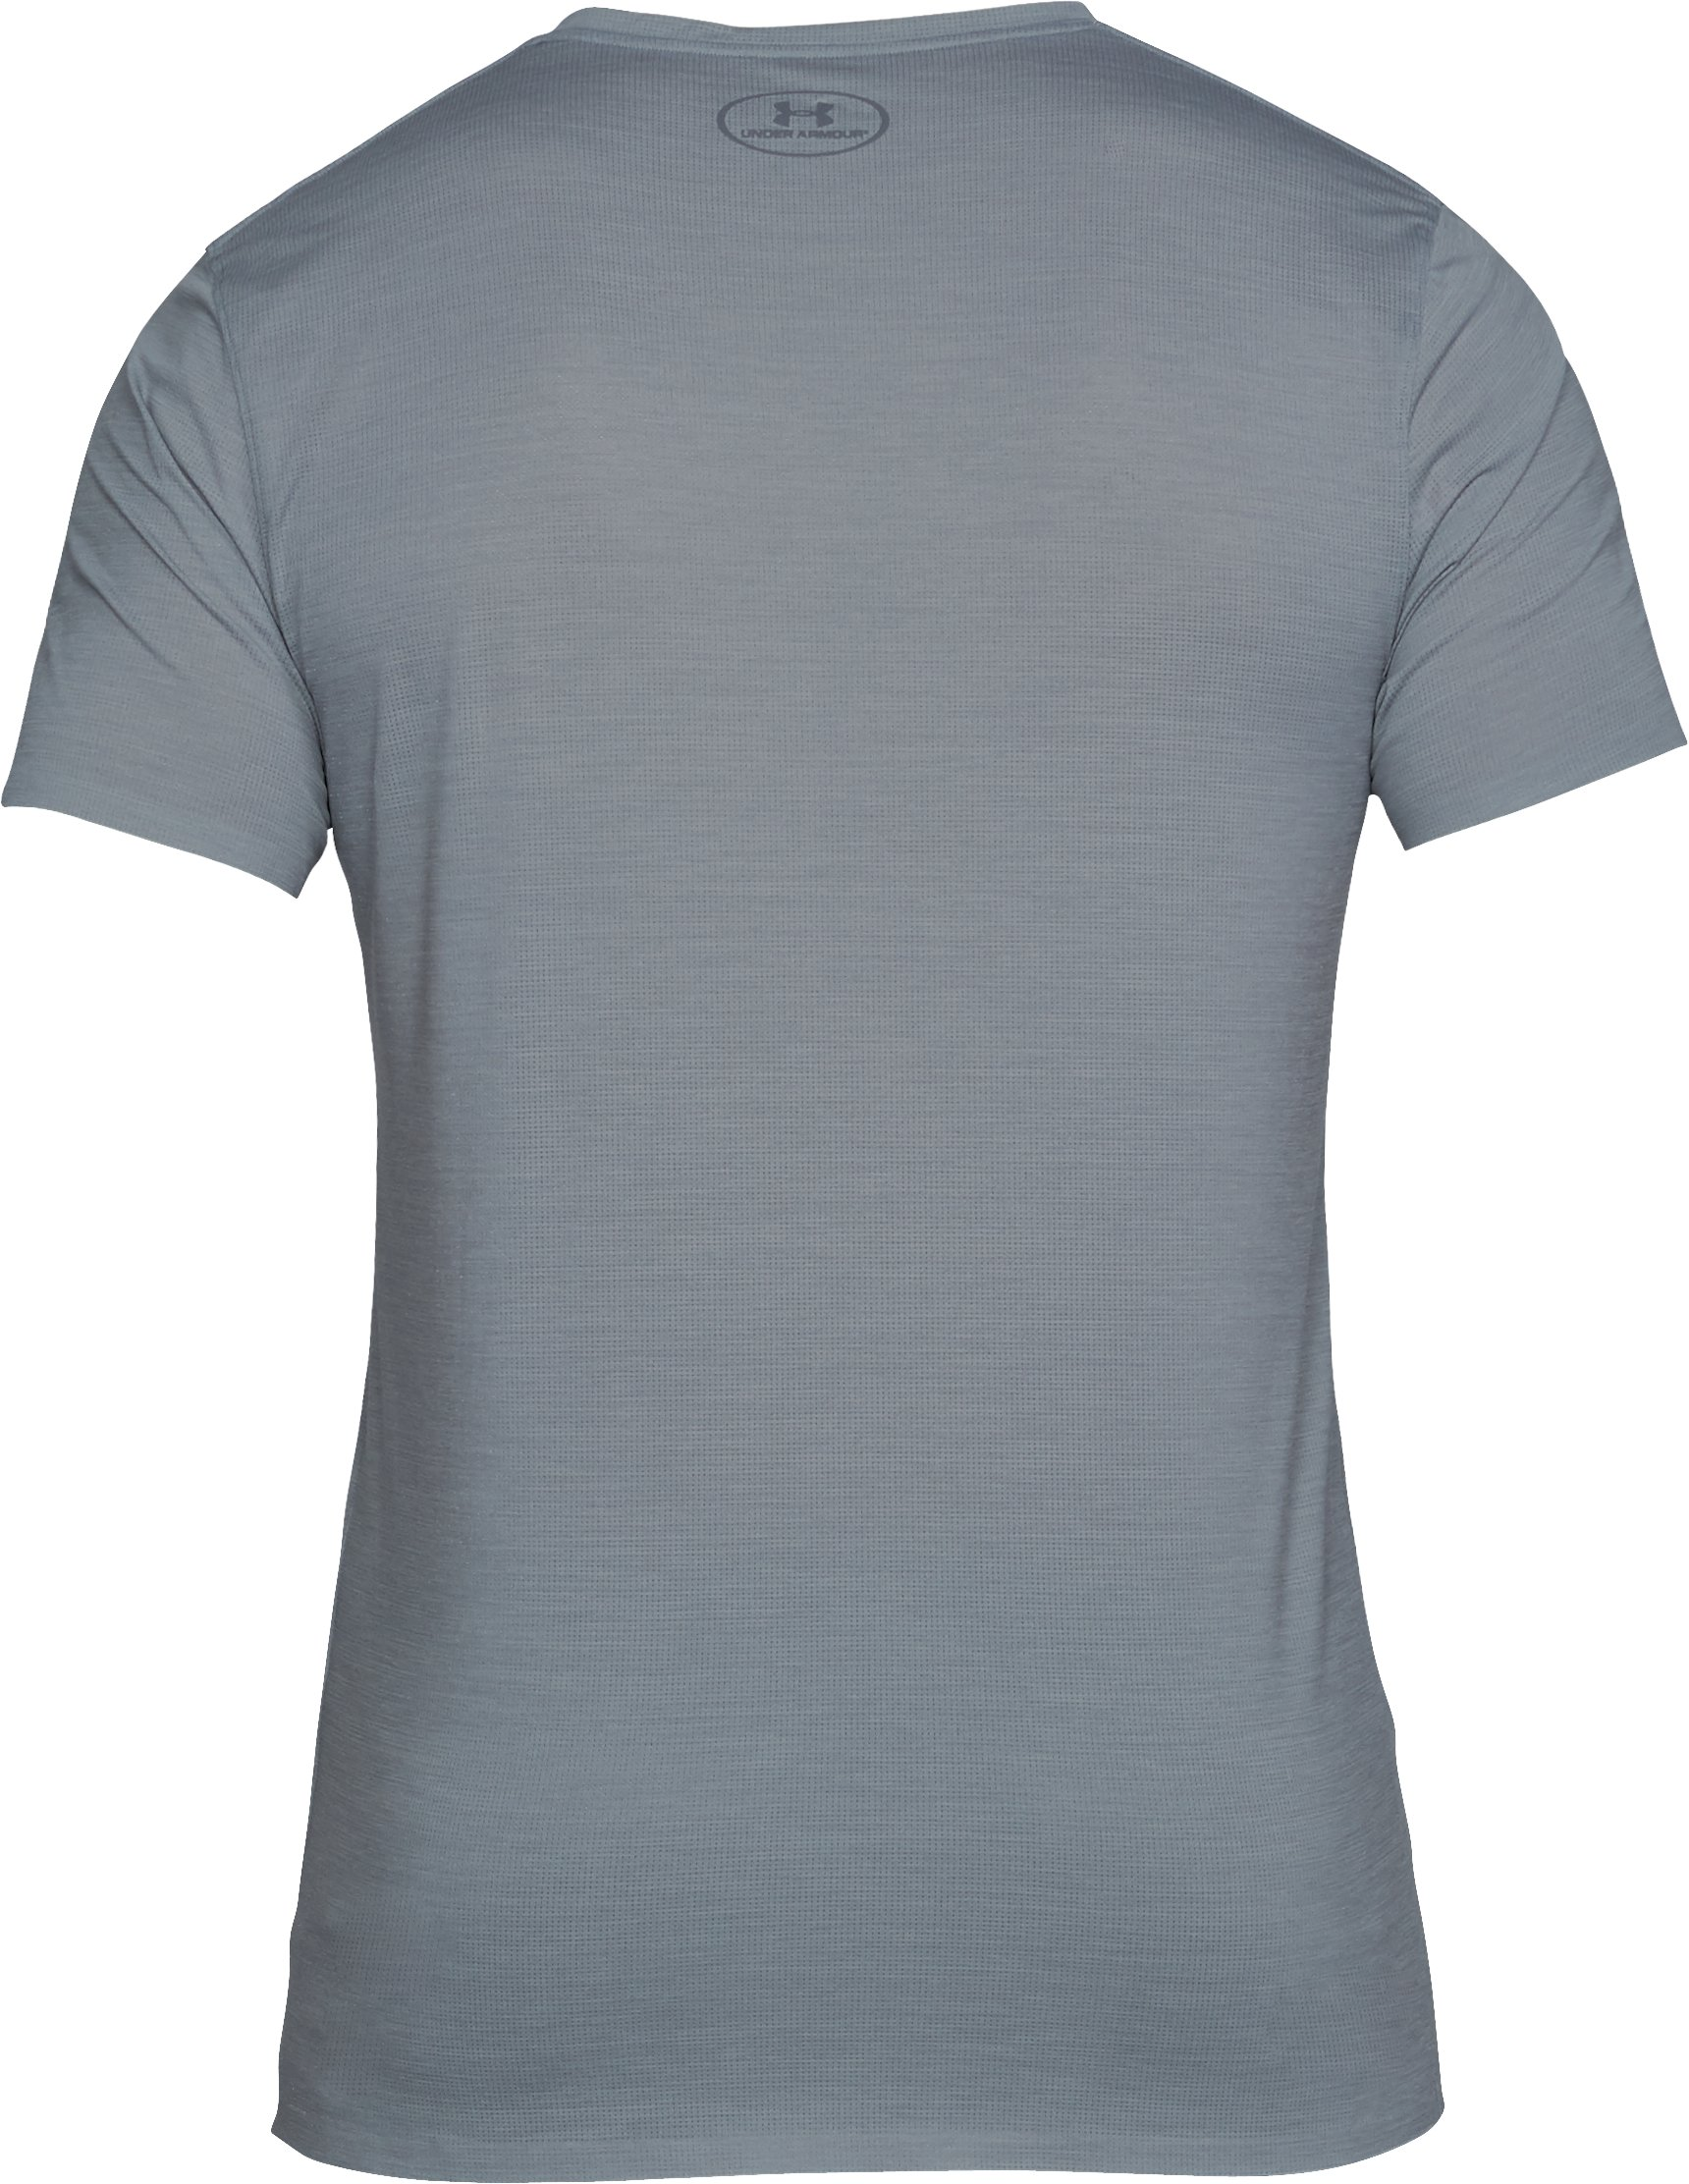 Men's ArmourVent® Mesh Series V-Neck Undershirt, STEEL LIGHT HEATHER, undefined